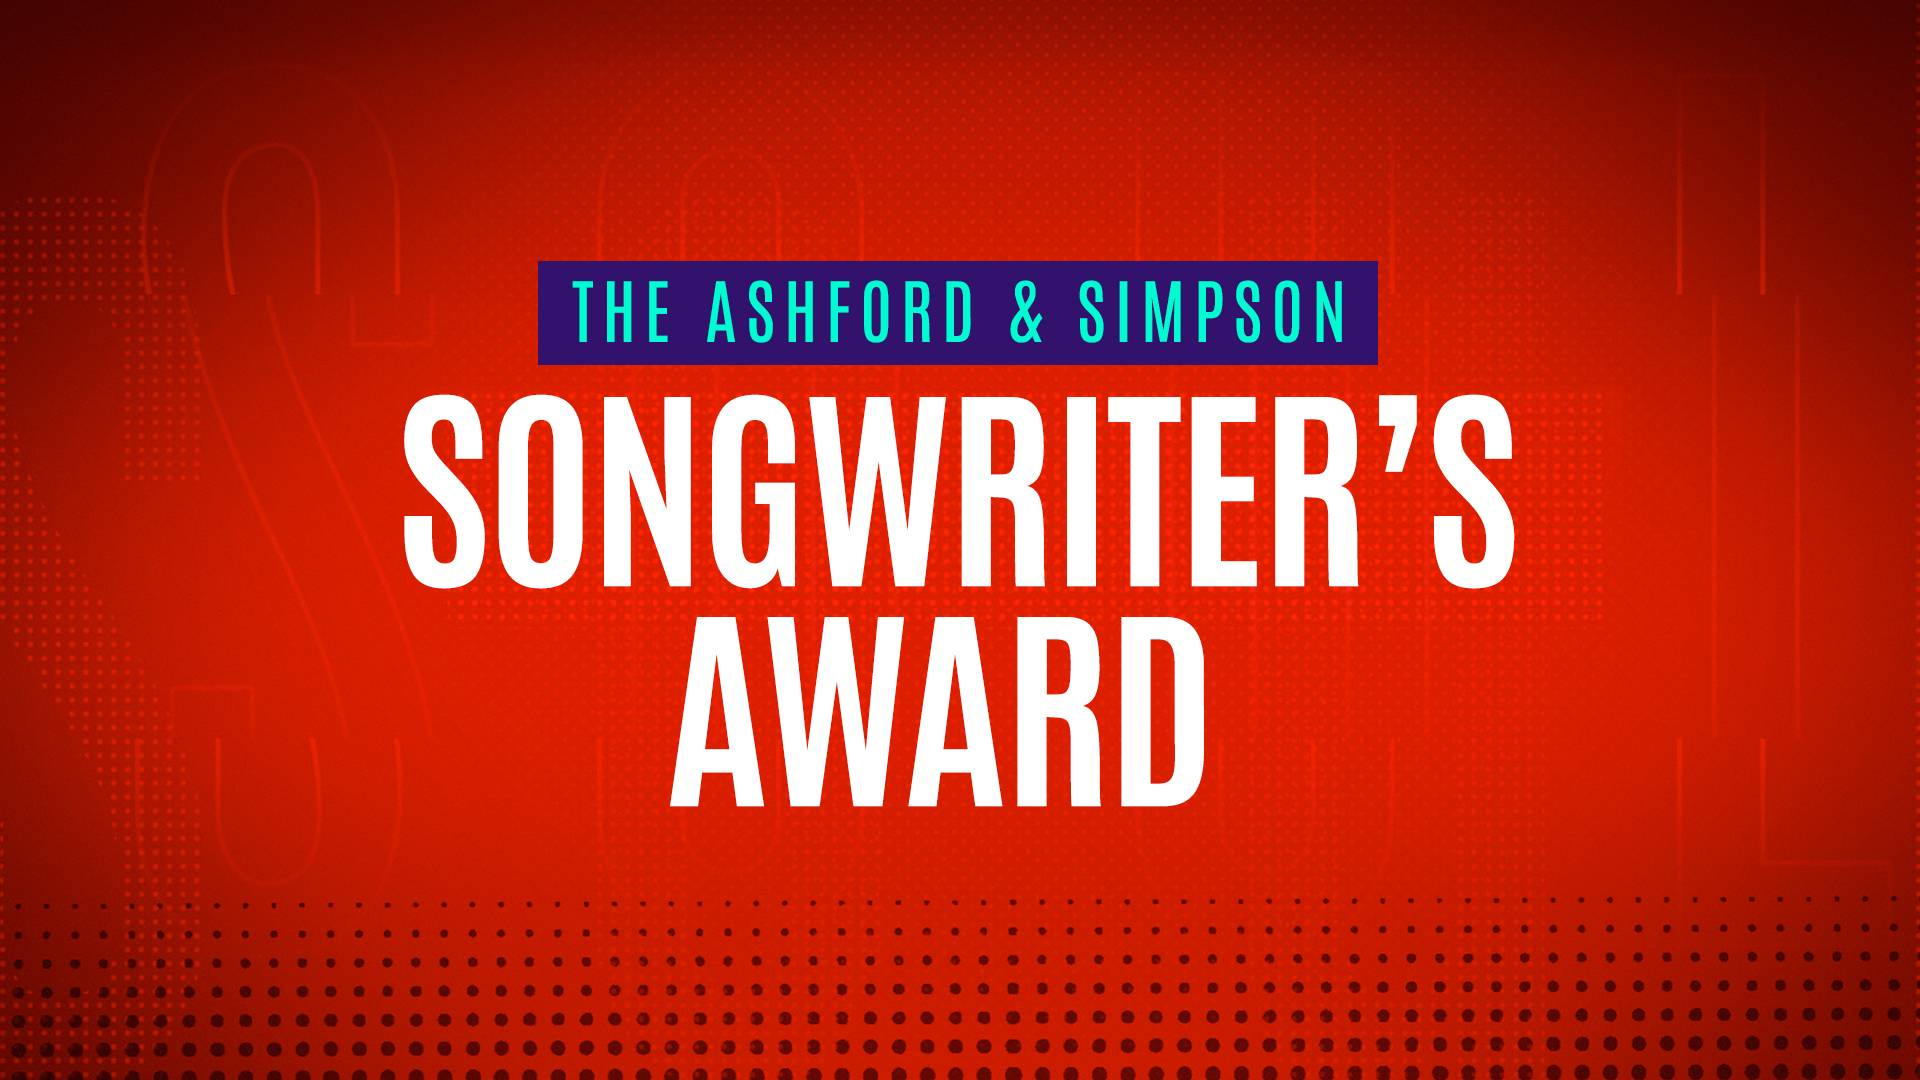 NOMINEES - THE ASHFORD & SIMPSON SONGWRITER'S AWARD